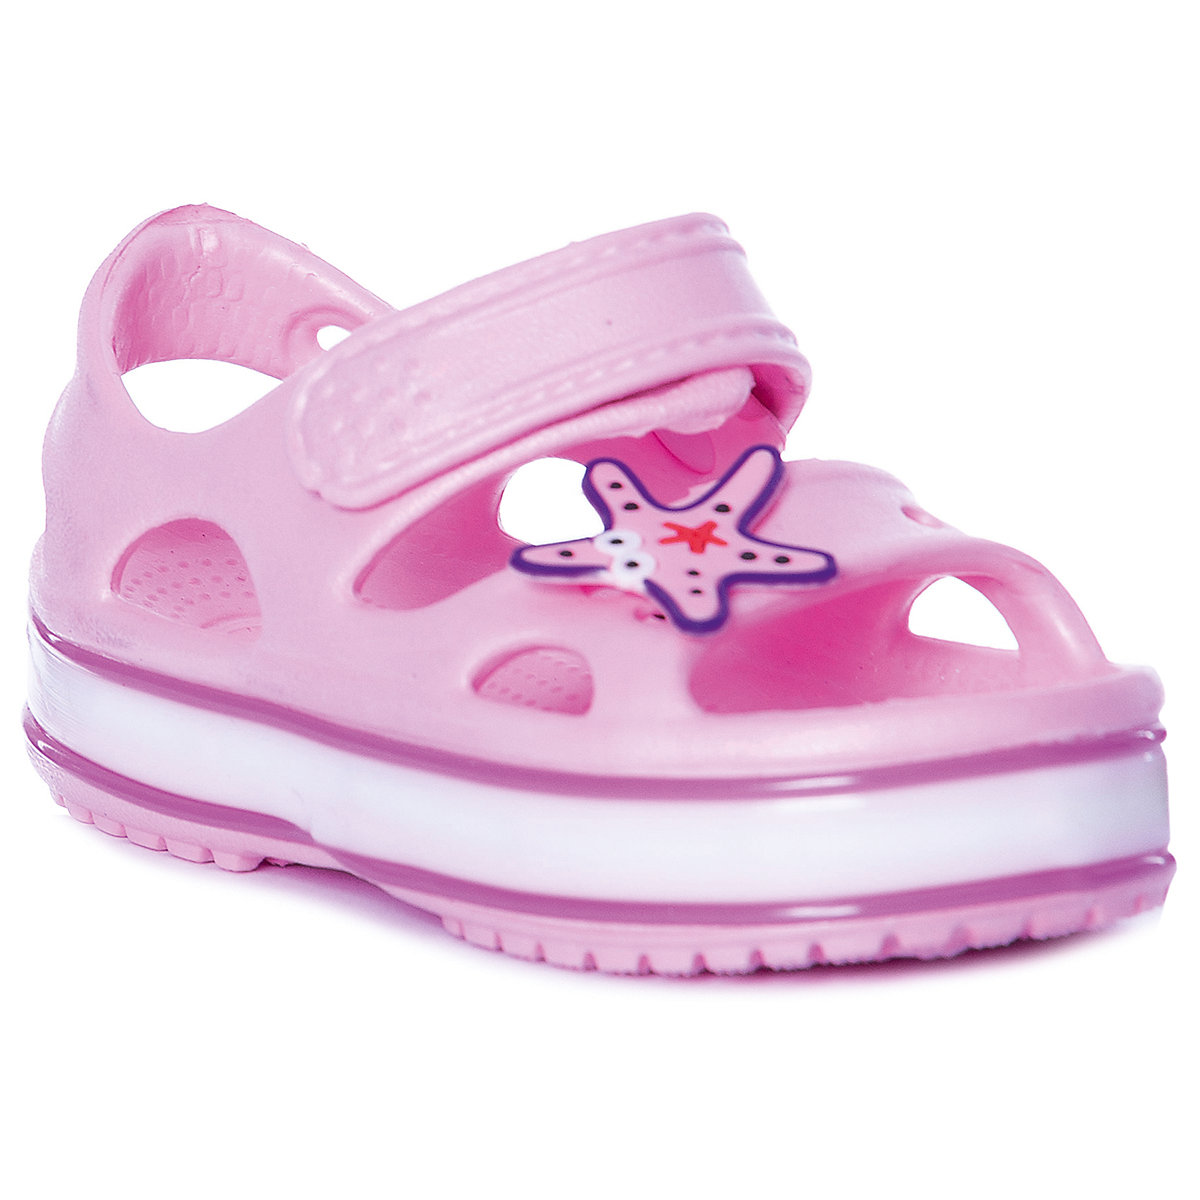 KOTOFEY Sandals 11319630 Children's Shoes Comfortable And Light Girls And Boys